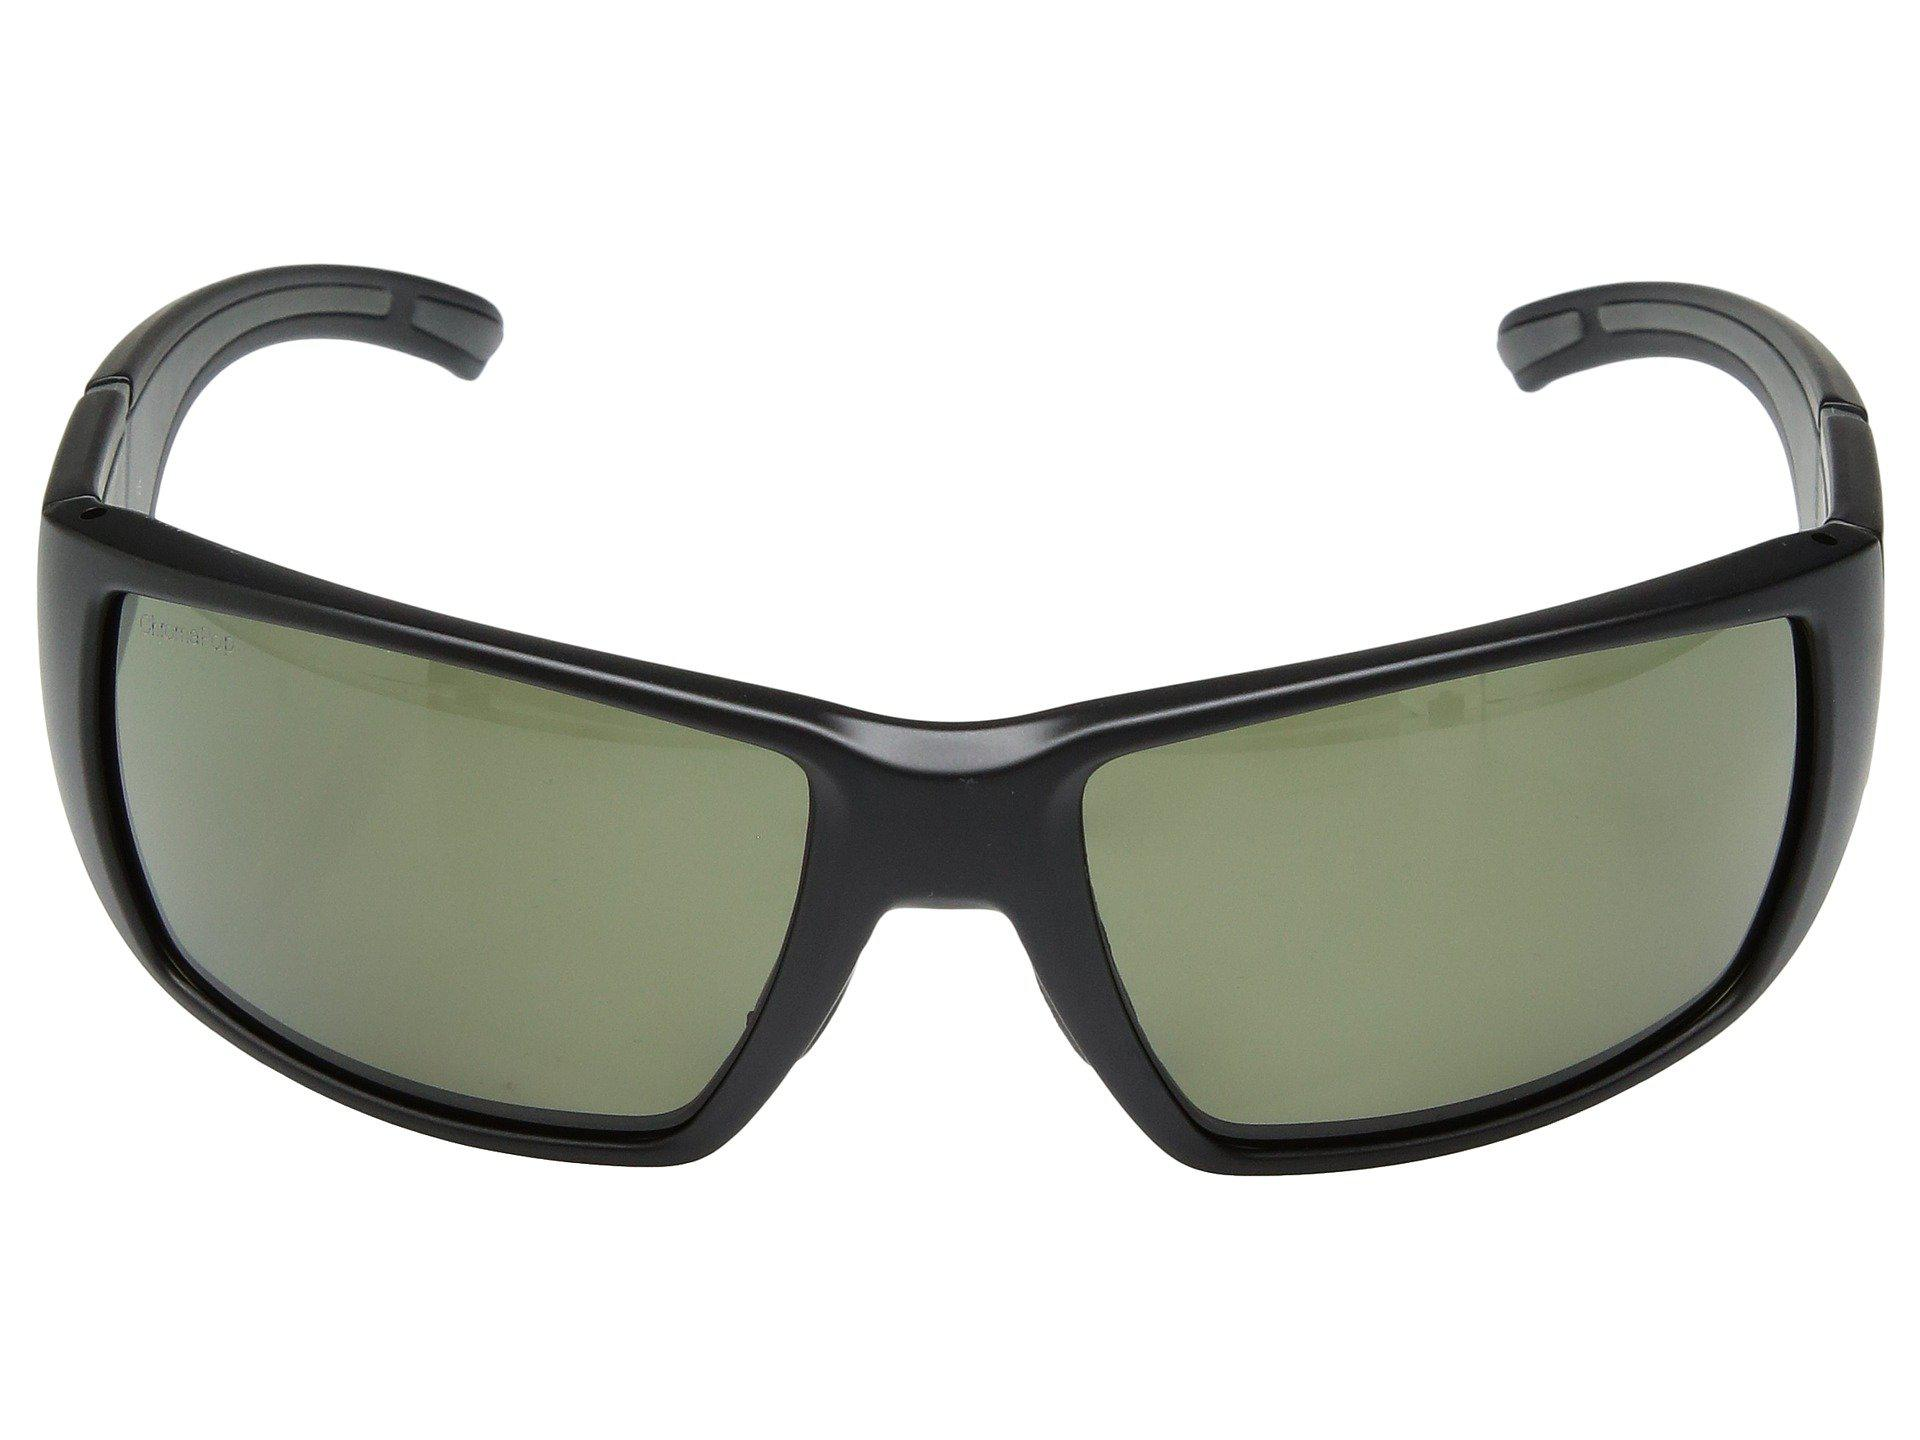 00f61629b3 Smith Optics - Black Transfer Xl (matte Tortoise brown Chromapoptm  Polarized Lens) Athletic. View fullscreen